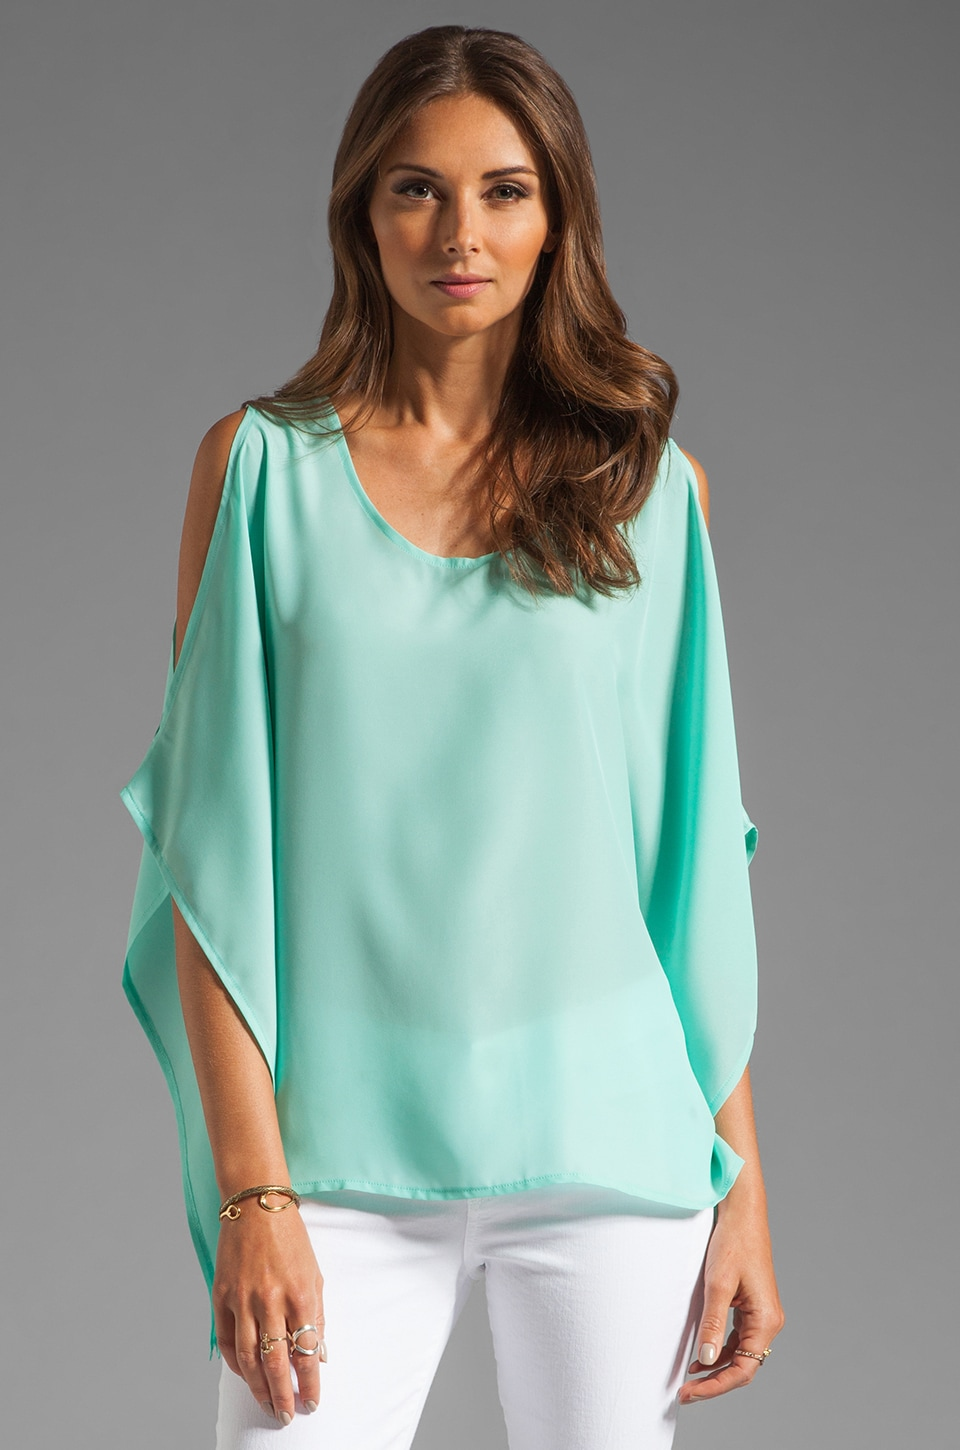 BLAQUE LABEL Open Shoulder Top in Aqua